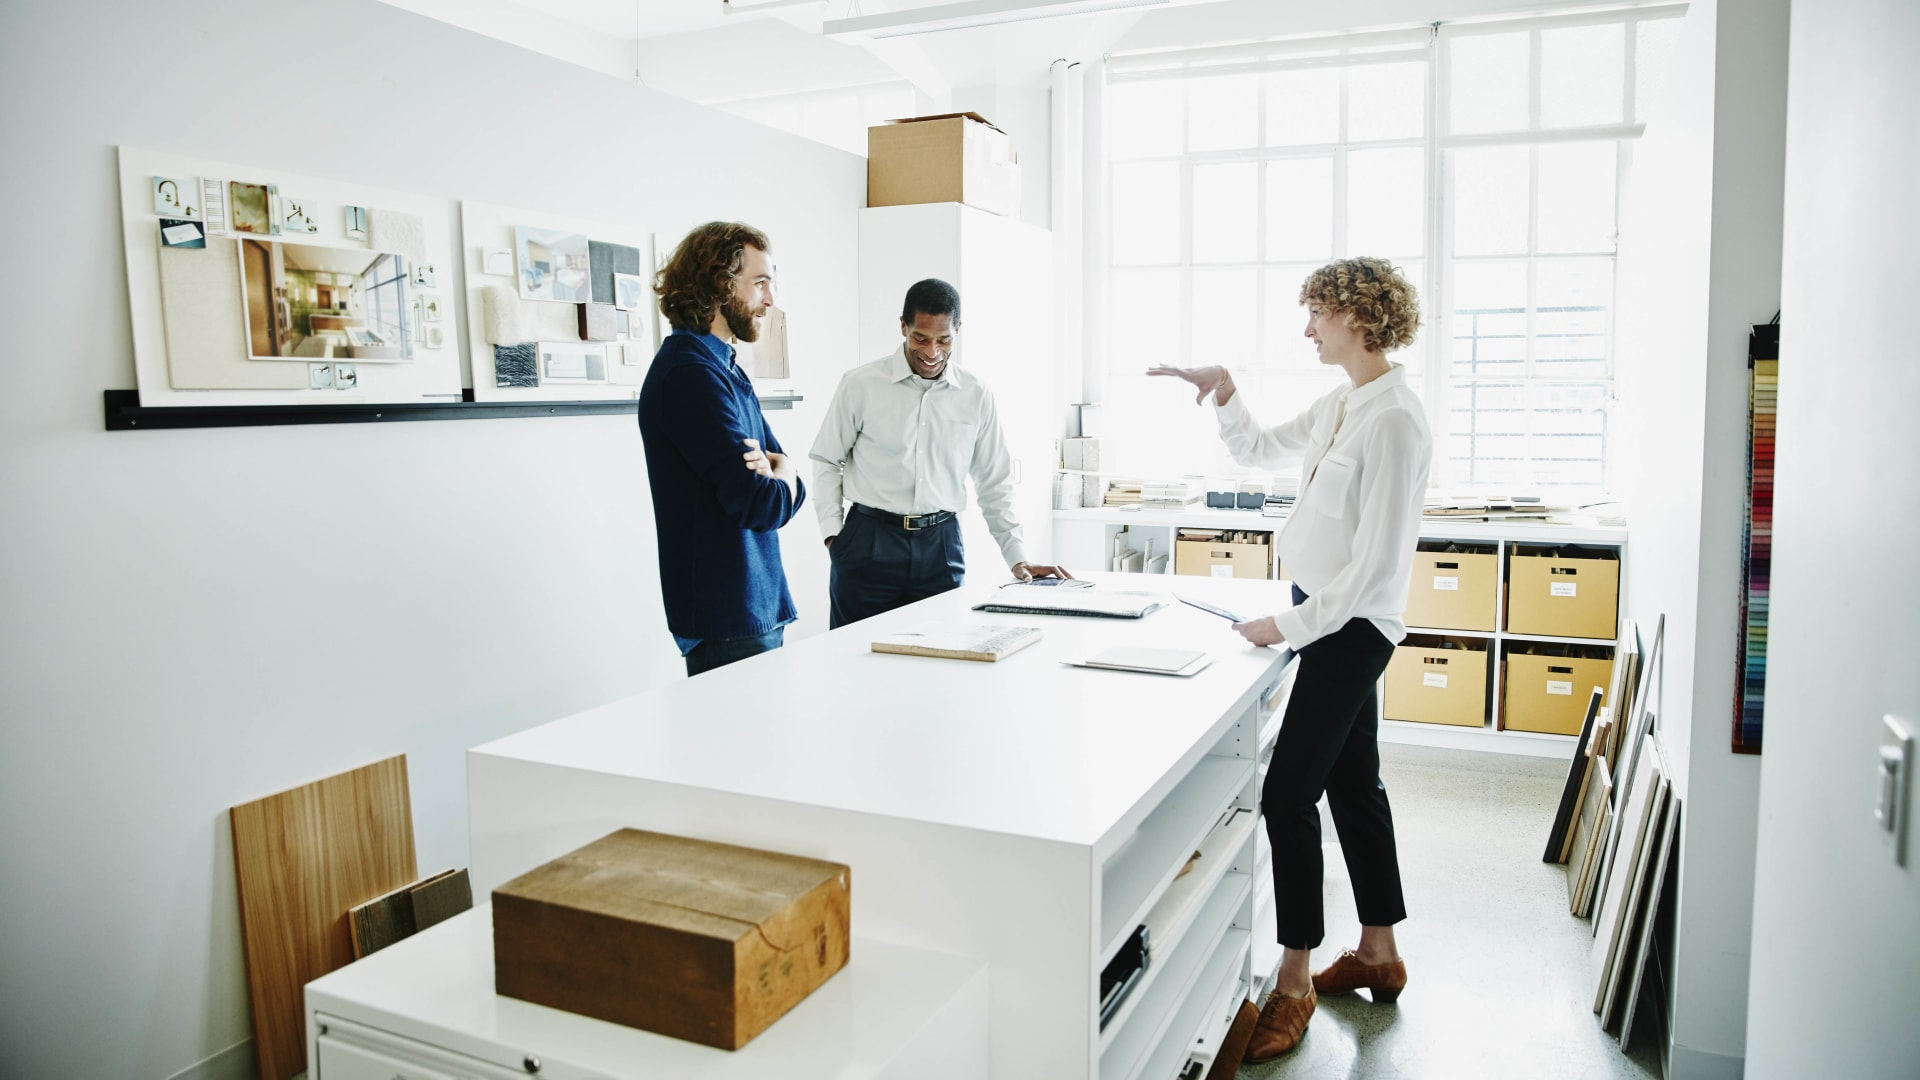 4 Critical Lessons for Anyone New to Leadership